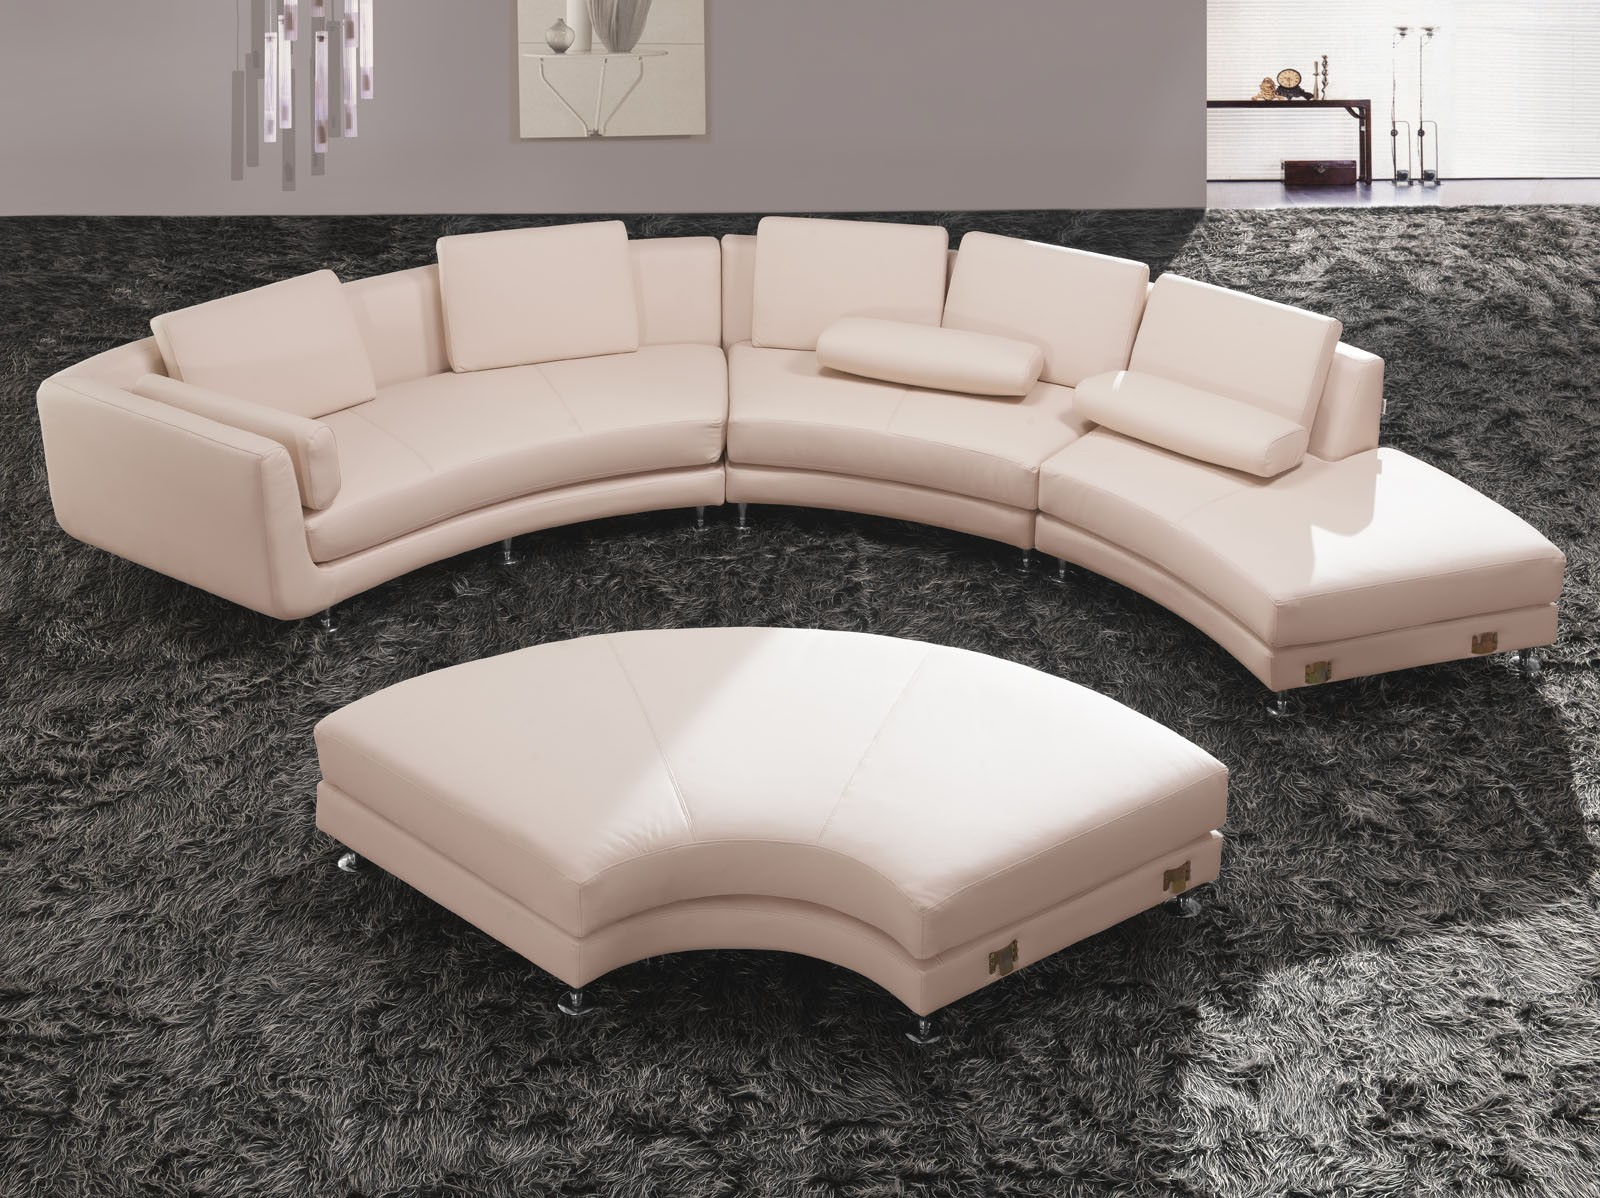 Fancy Curved Sectional Sofa 20 For Sofa Design Ideas with Curved Sectional Sofa